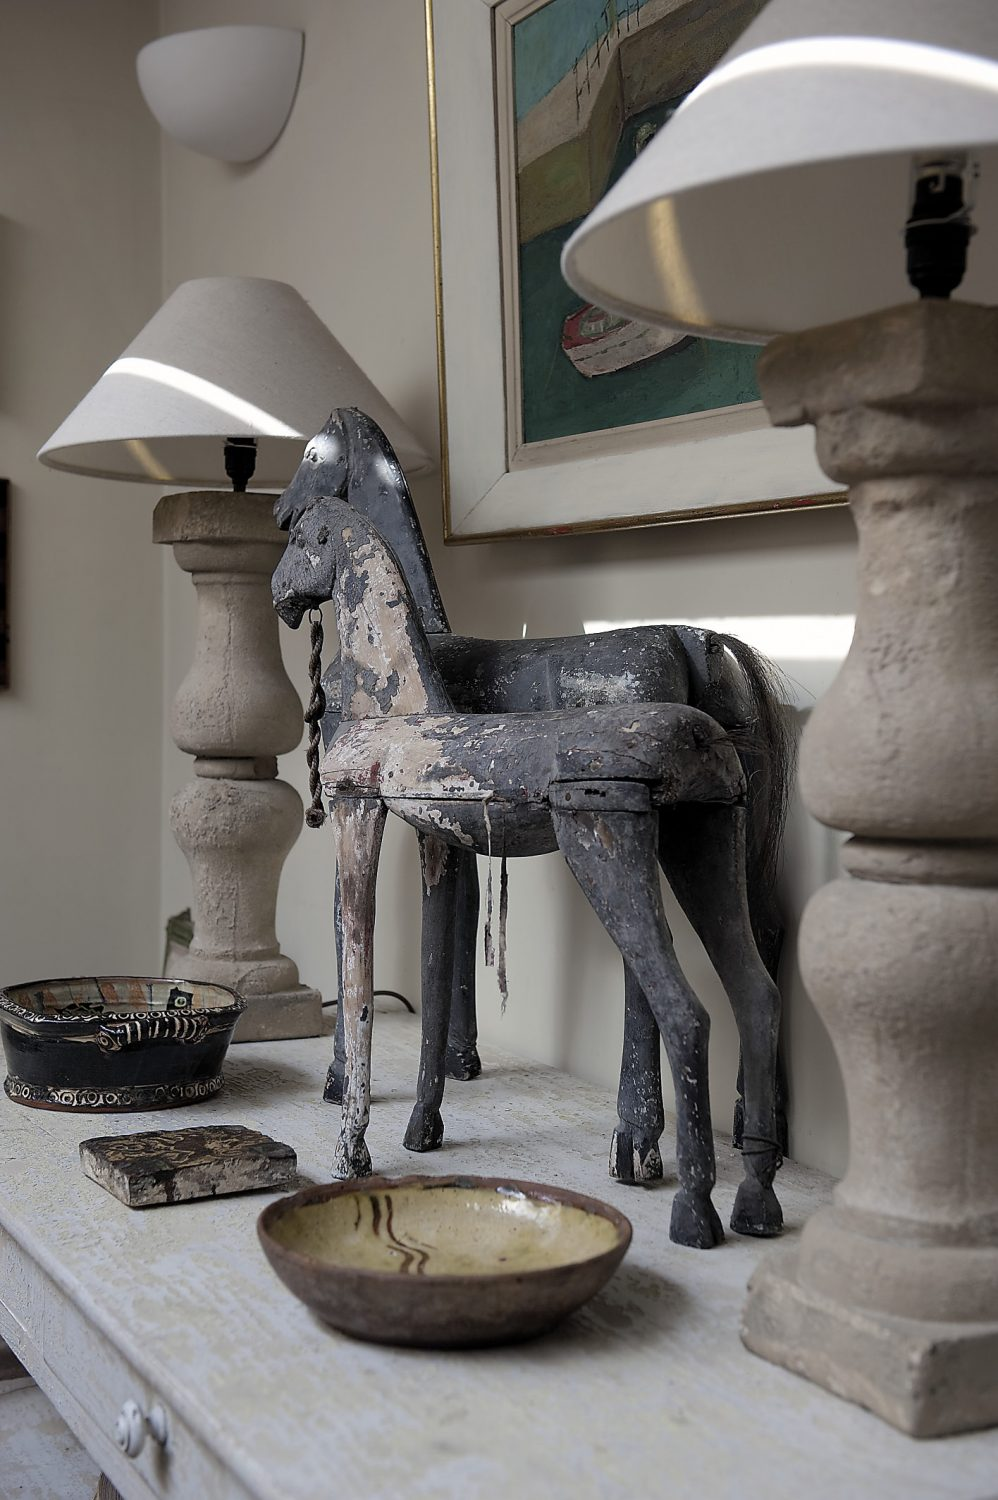 James' house is filled with artworks, ornaments and curios, the most striking of which are a pair of toy wooden horses